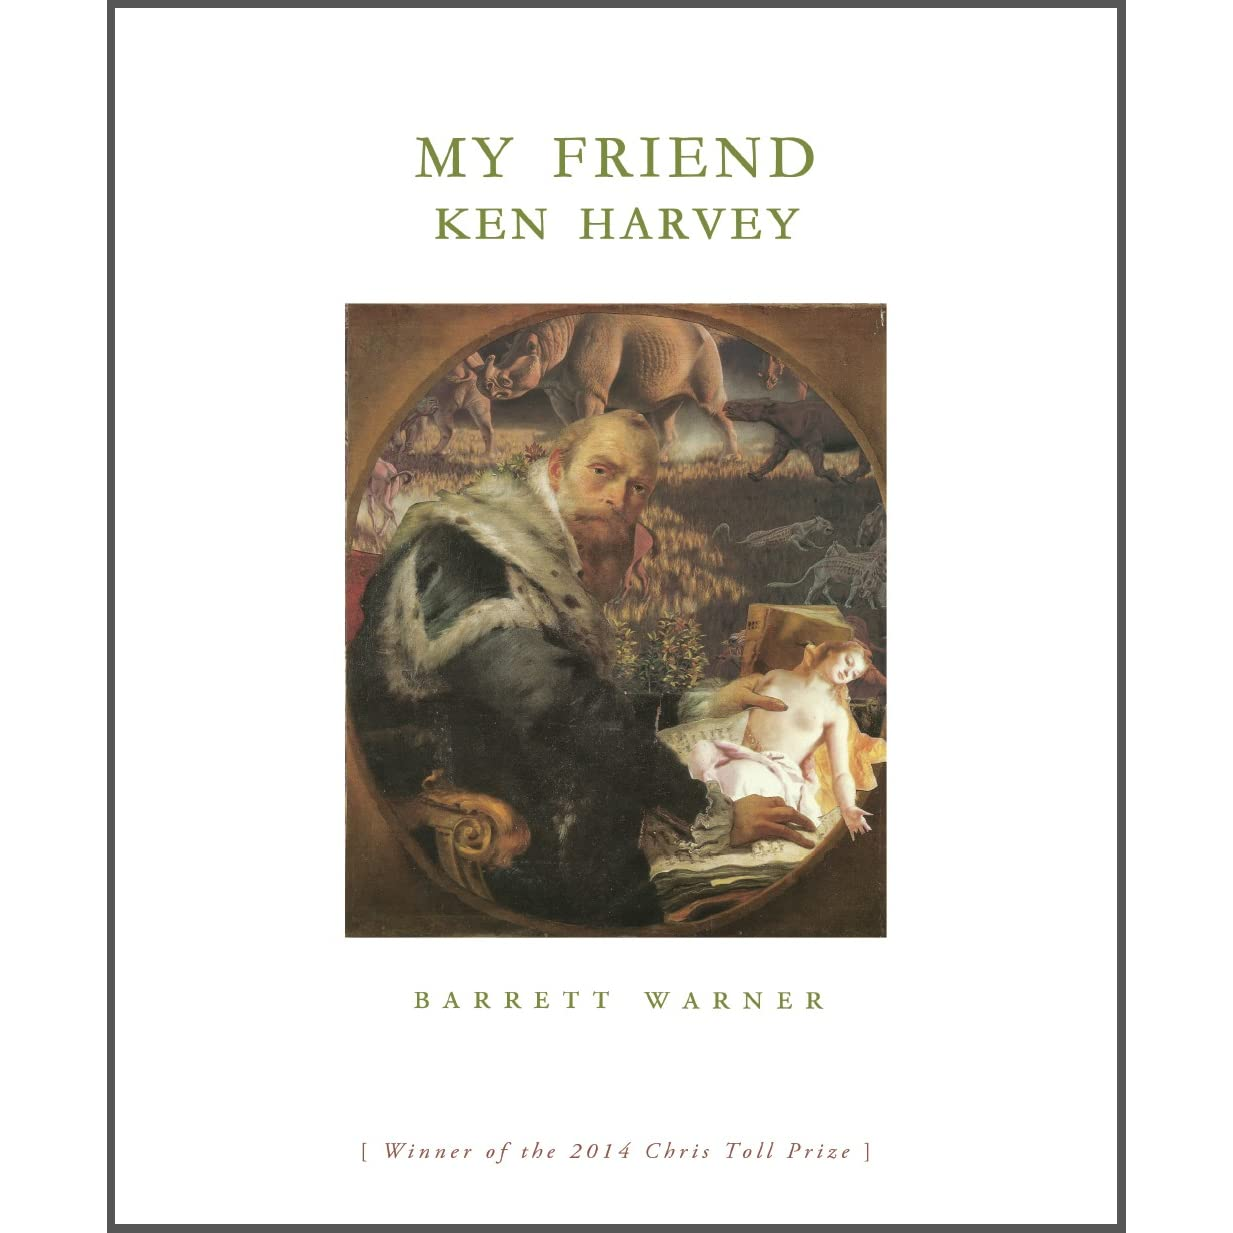 My Friend Ken Harvey by Barrett Warner